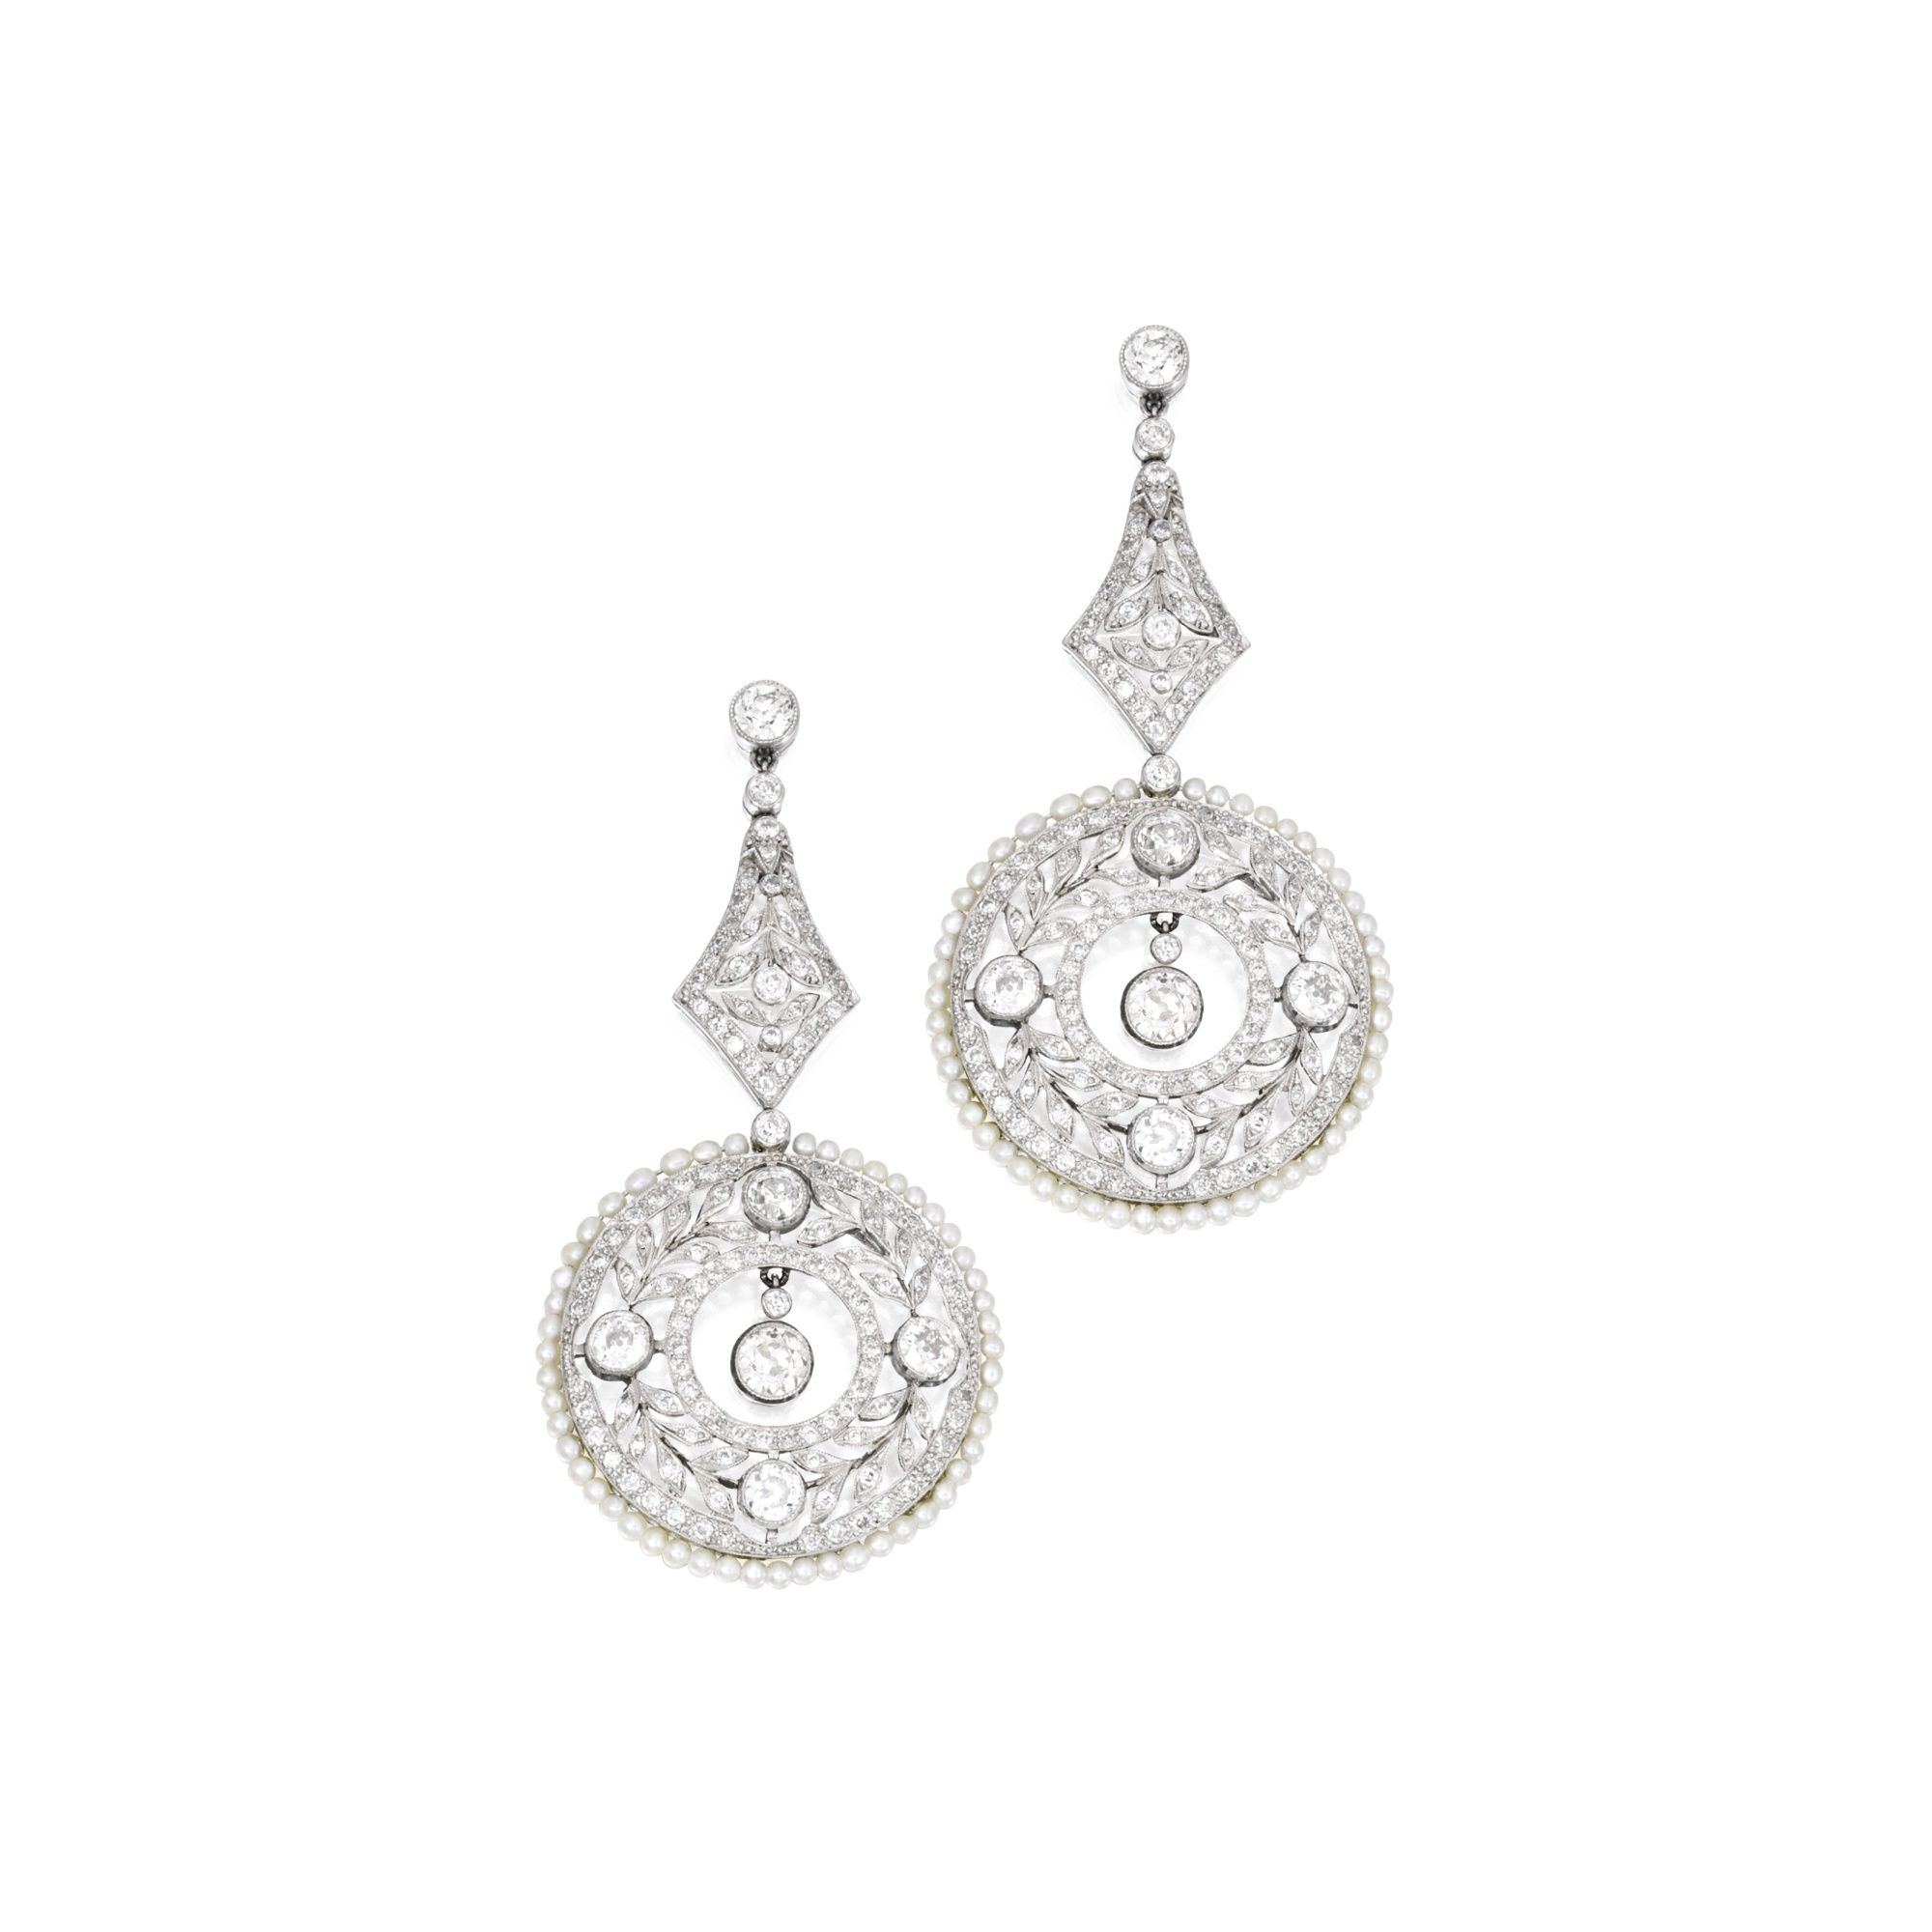 Pair of platinum diamond and seed pearl pendantearrings of garland